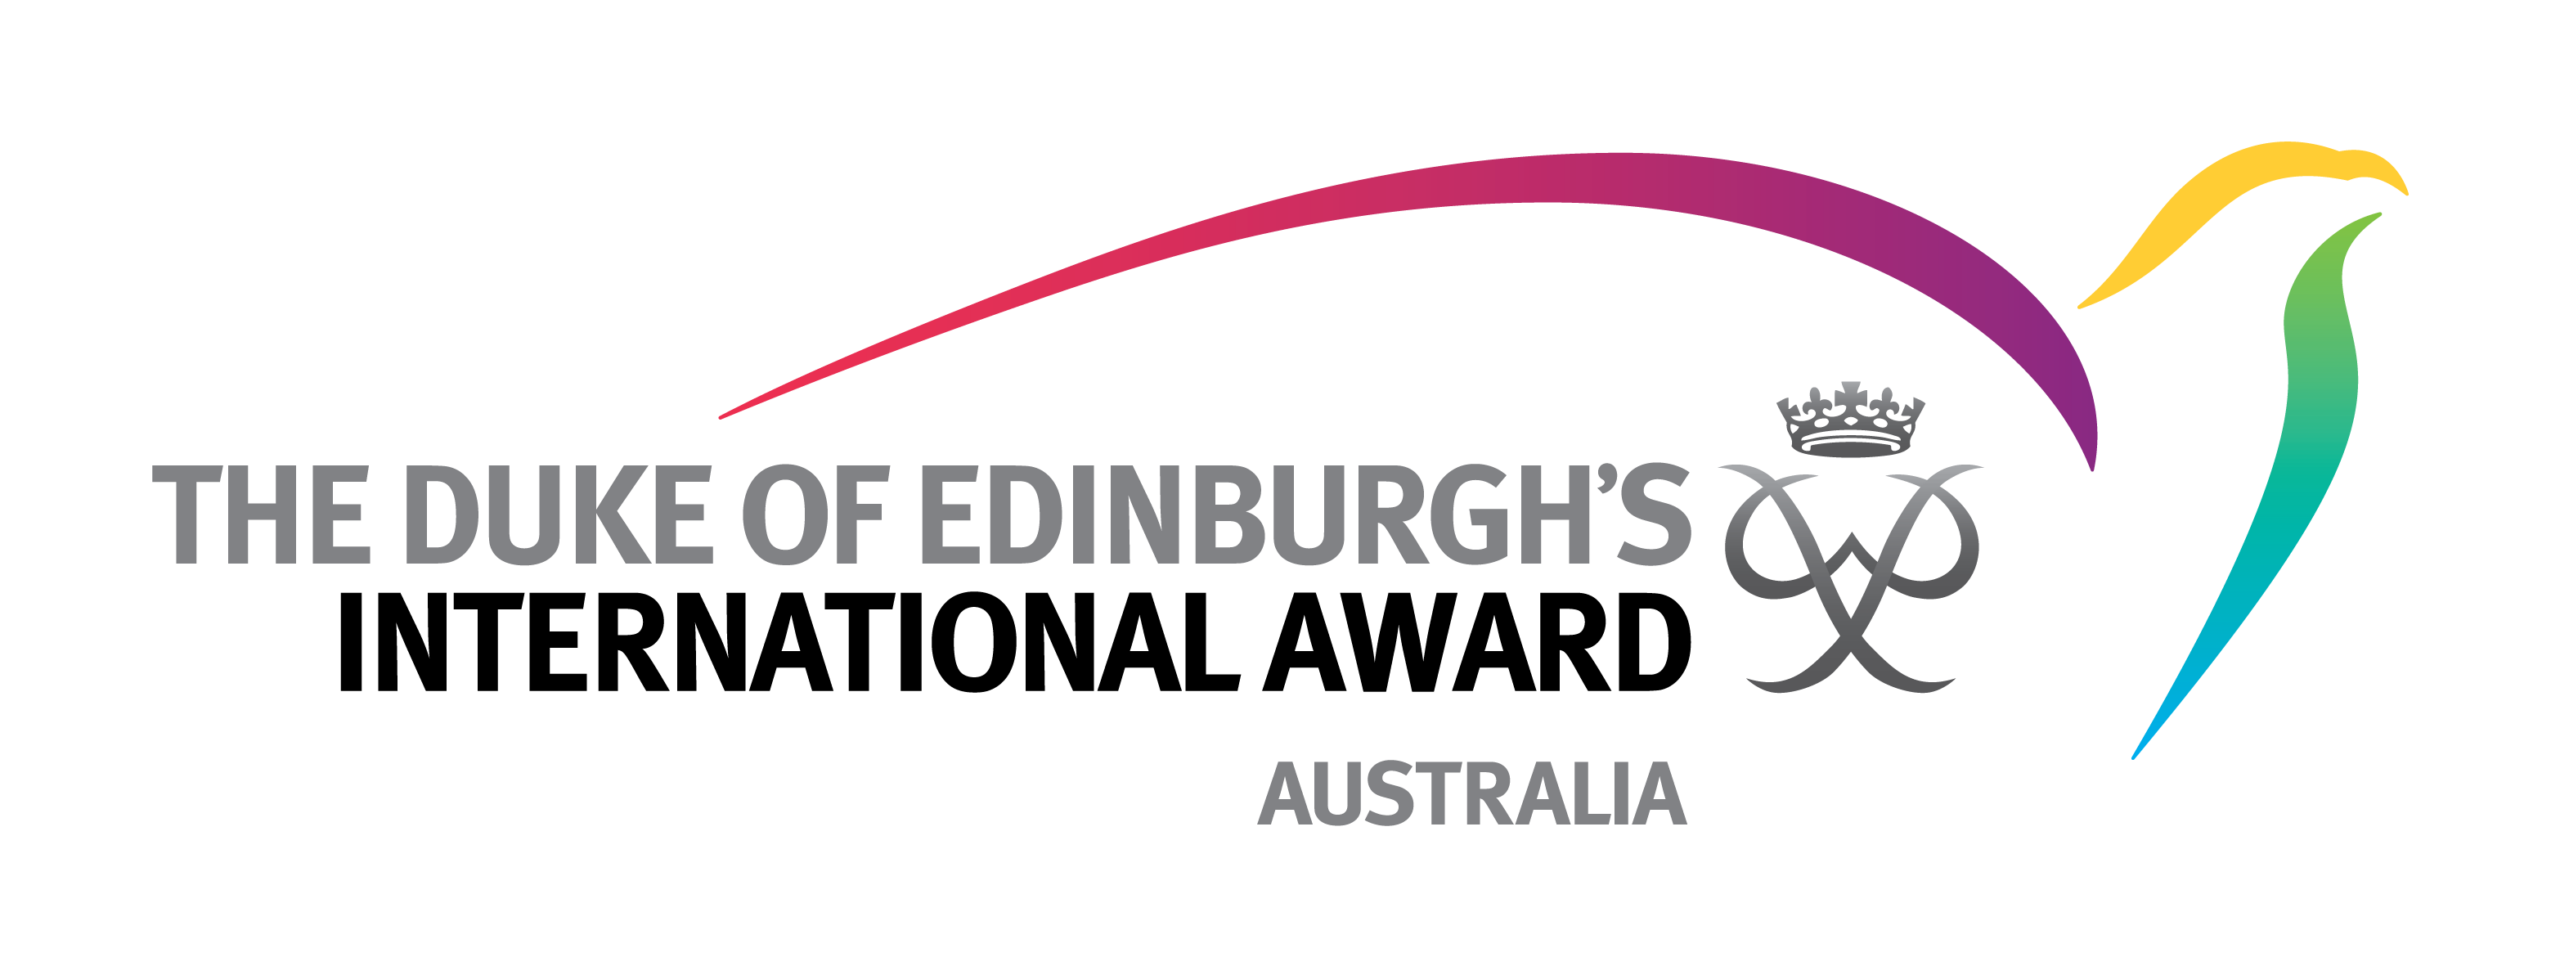 Duke of Edinburgh International Award - Australia logo